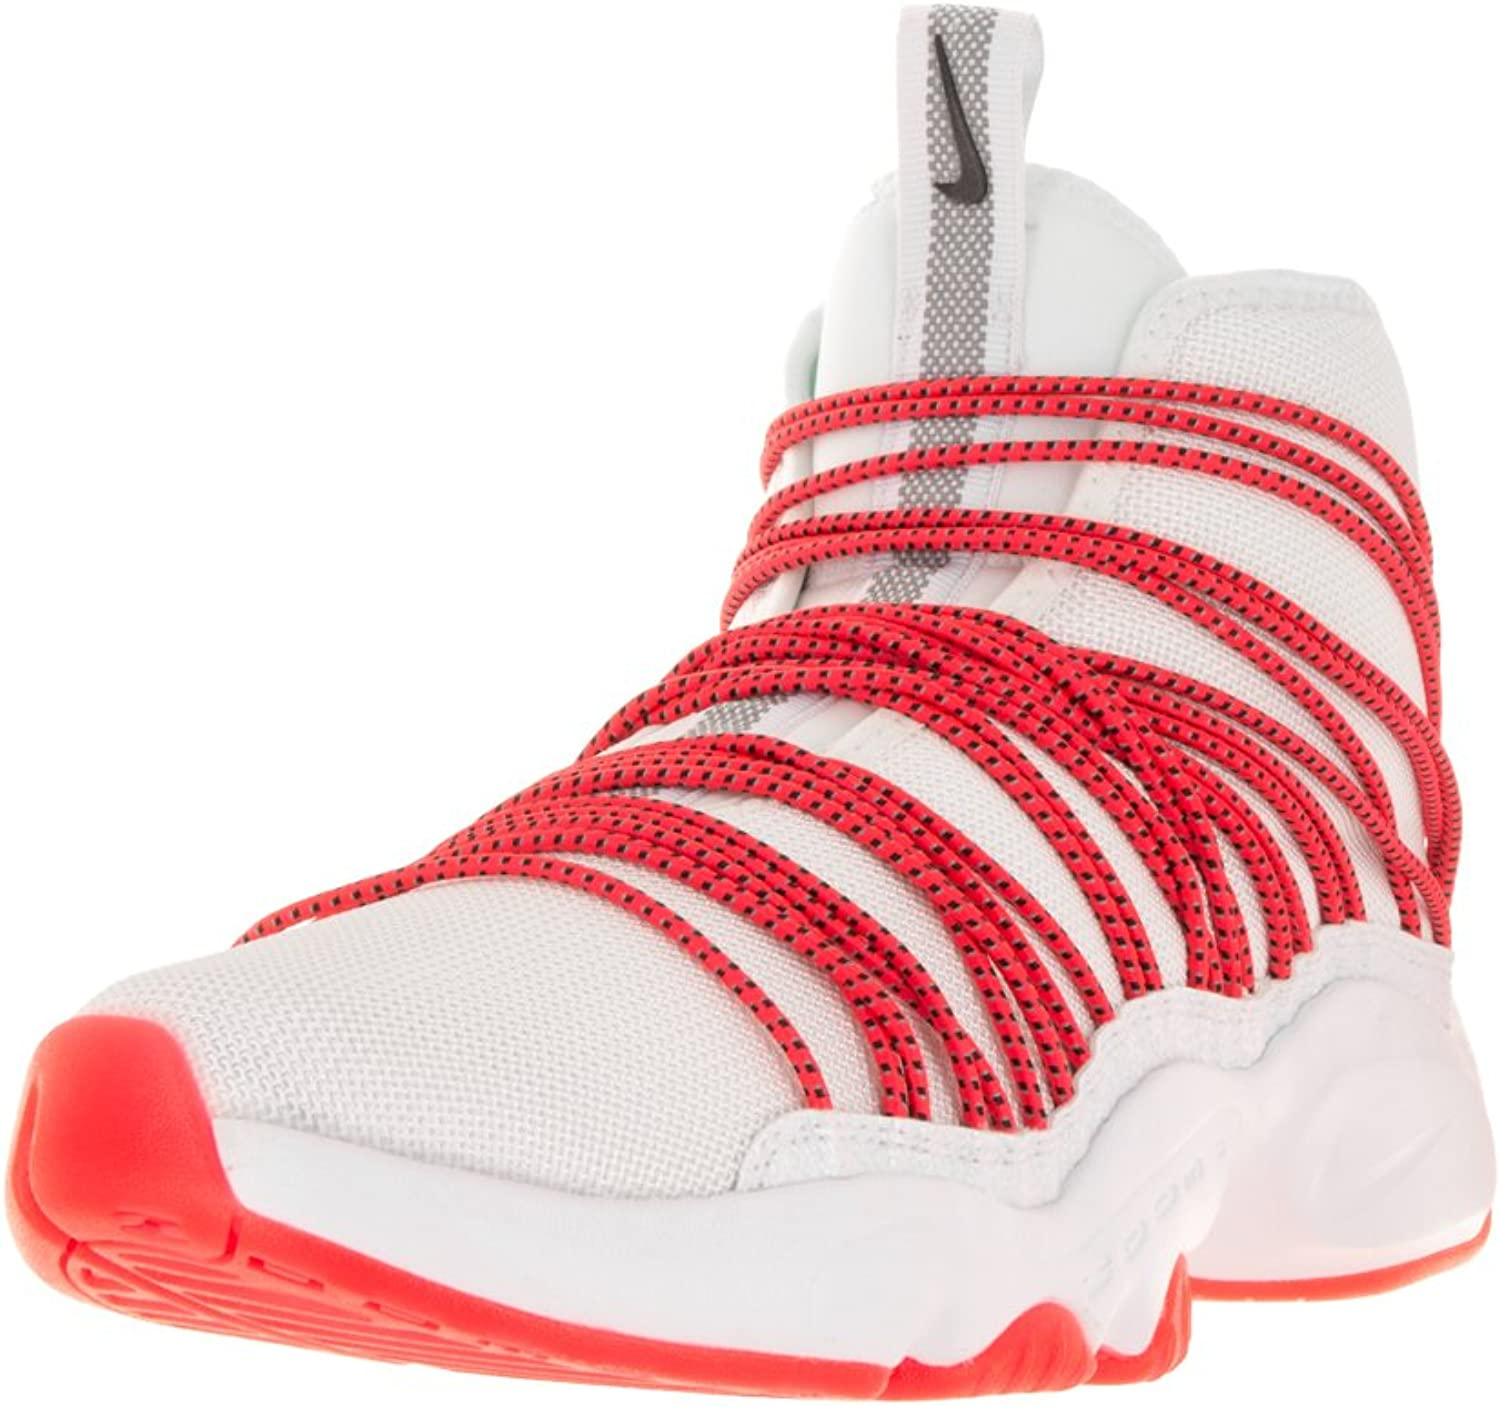 Nike Men's Zoom Cabos Basketball shoes